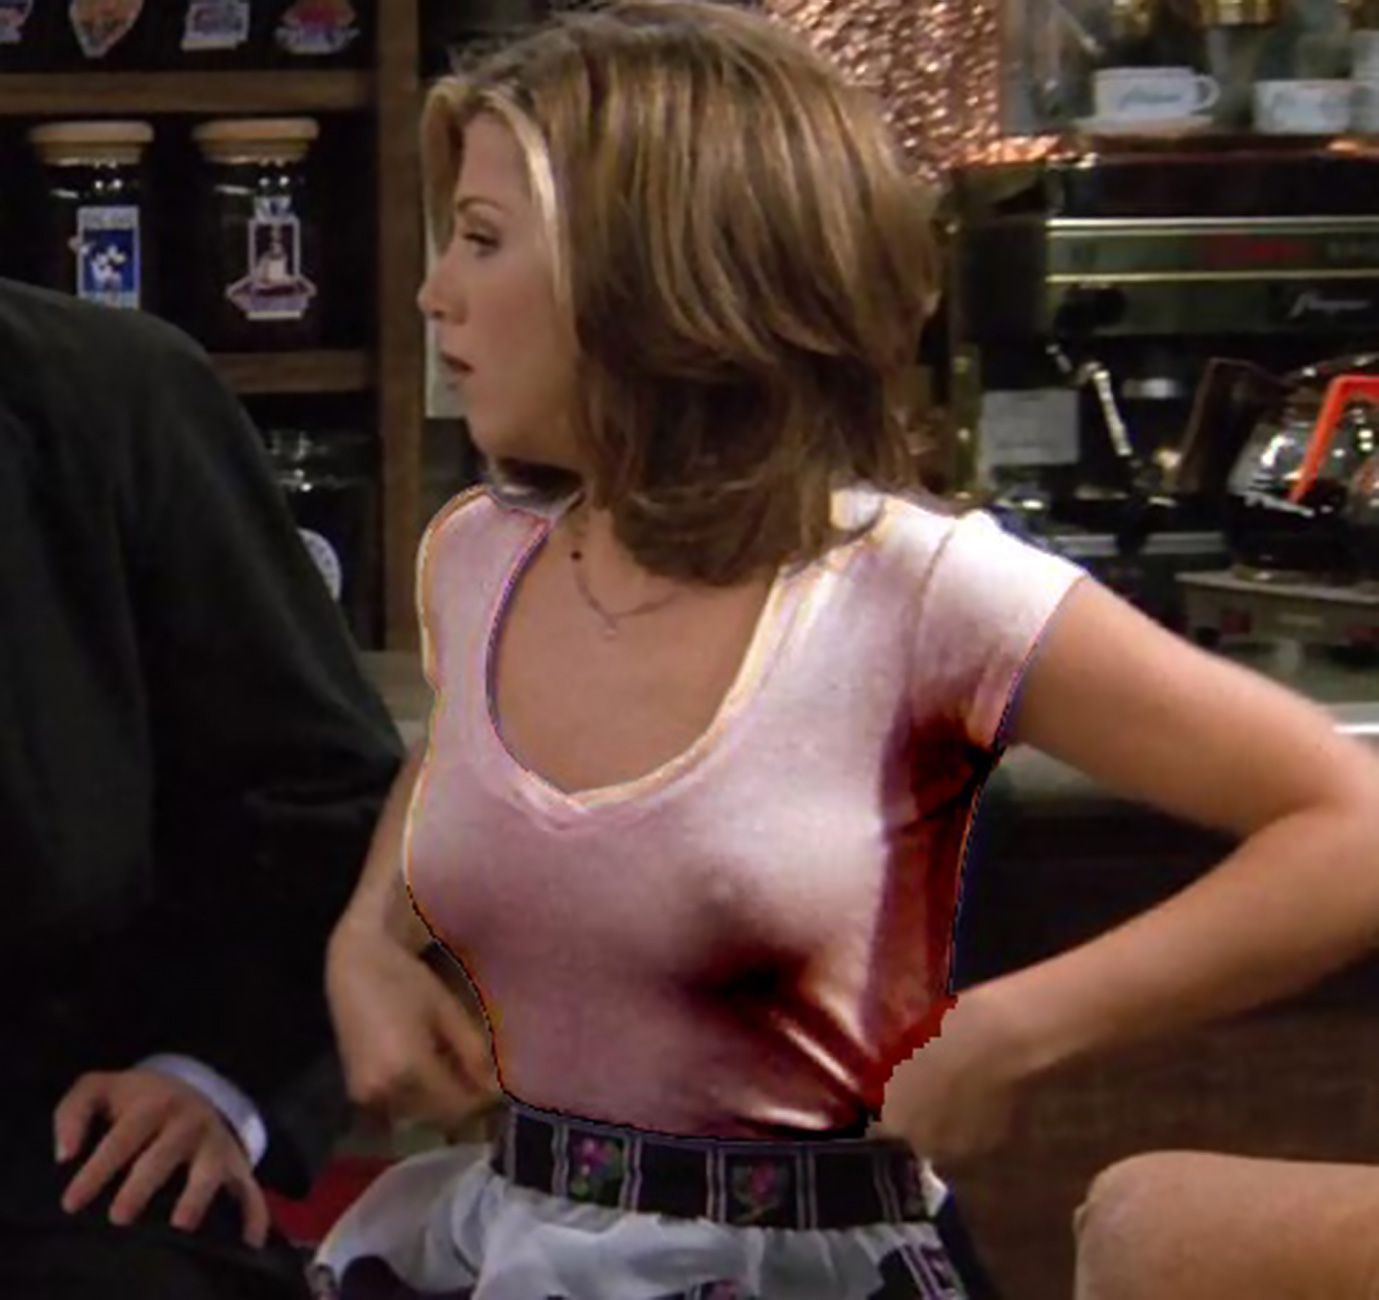 naked pictures of jennifer from friends